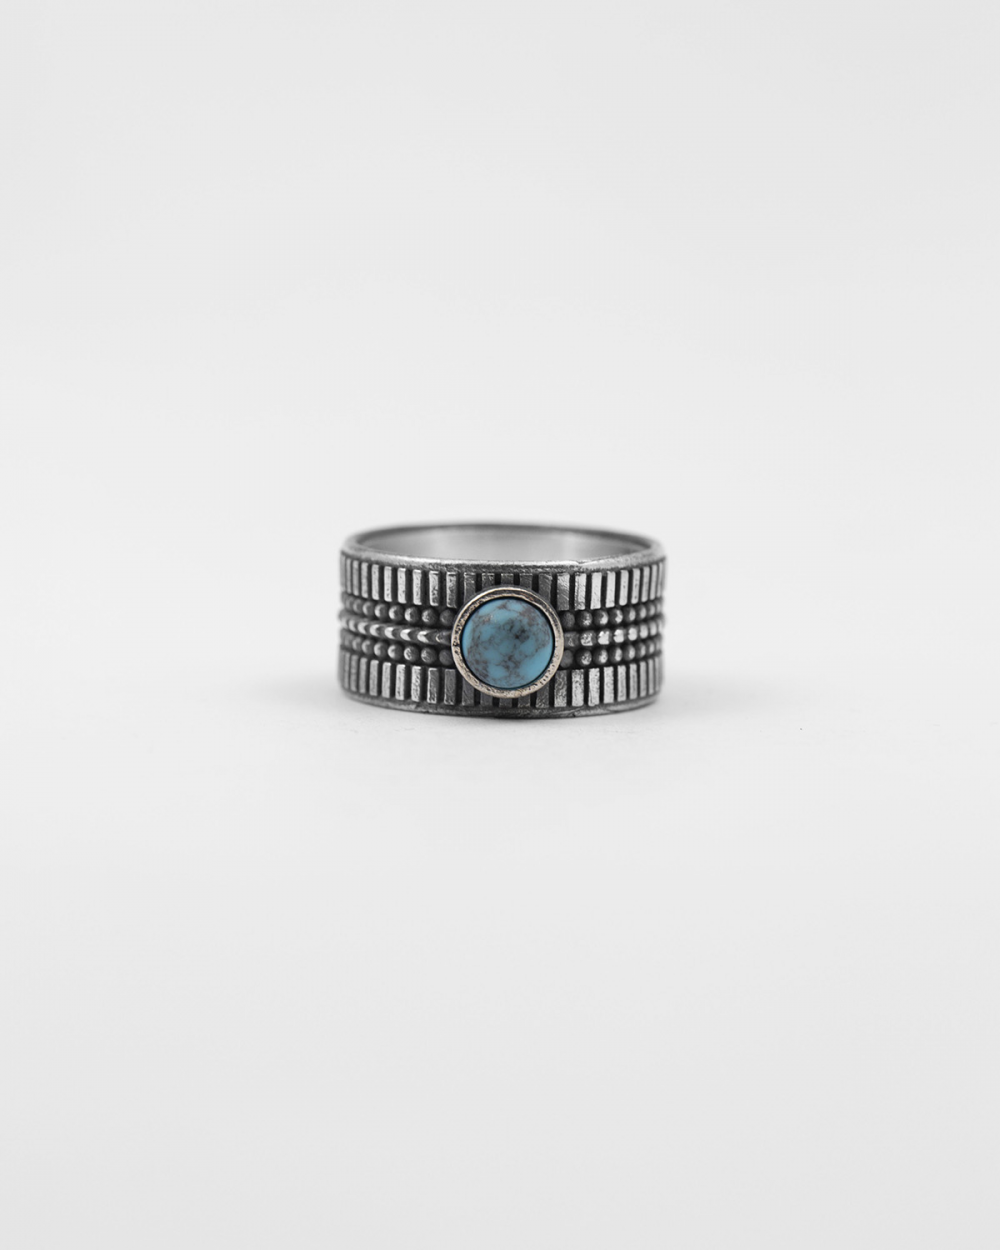 native turquoise band ring